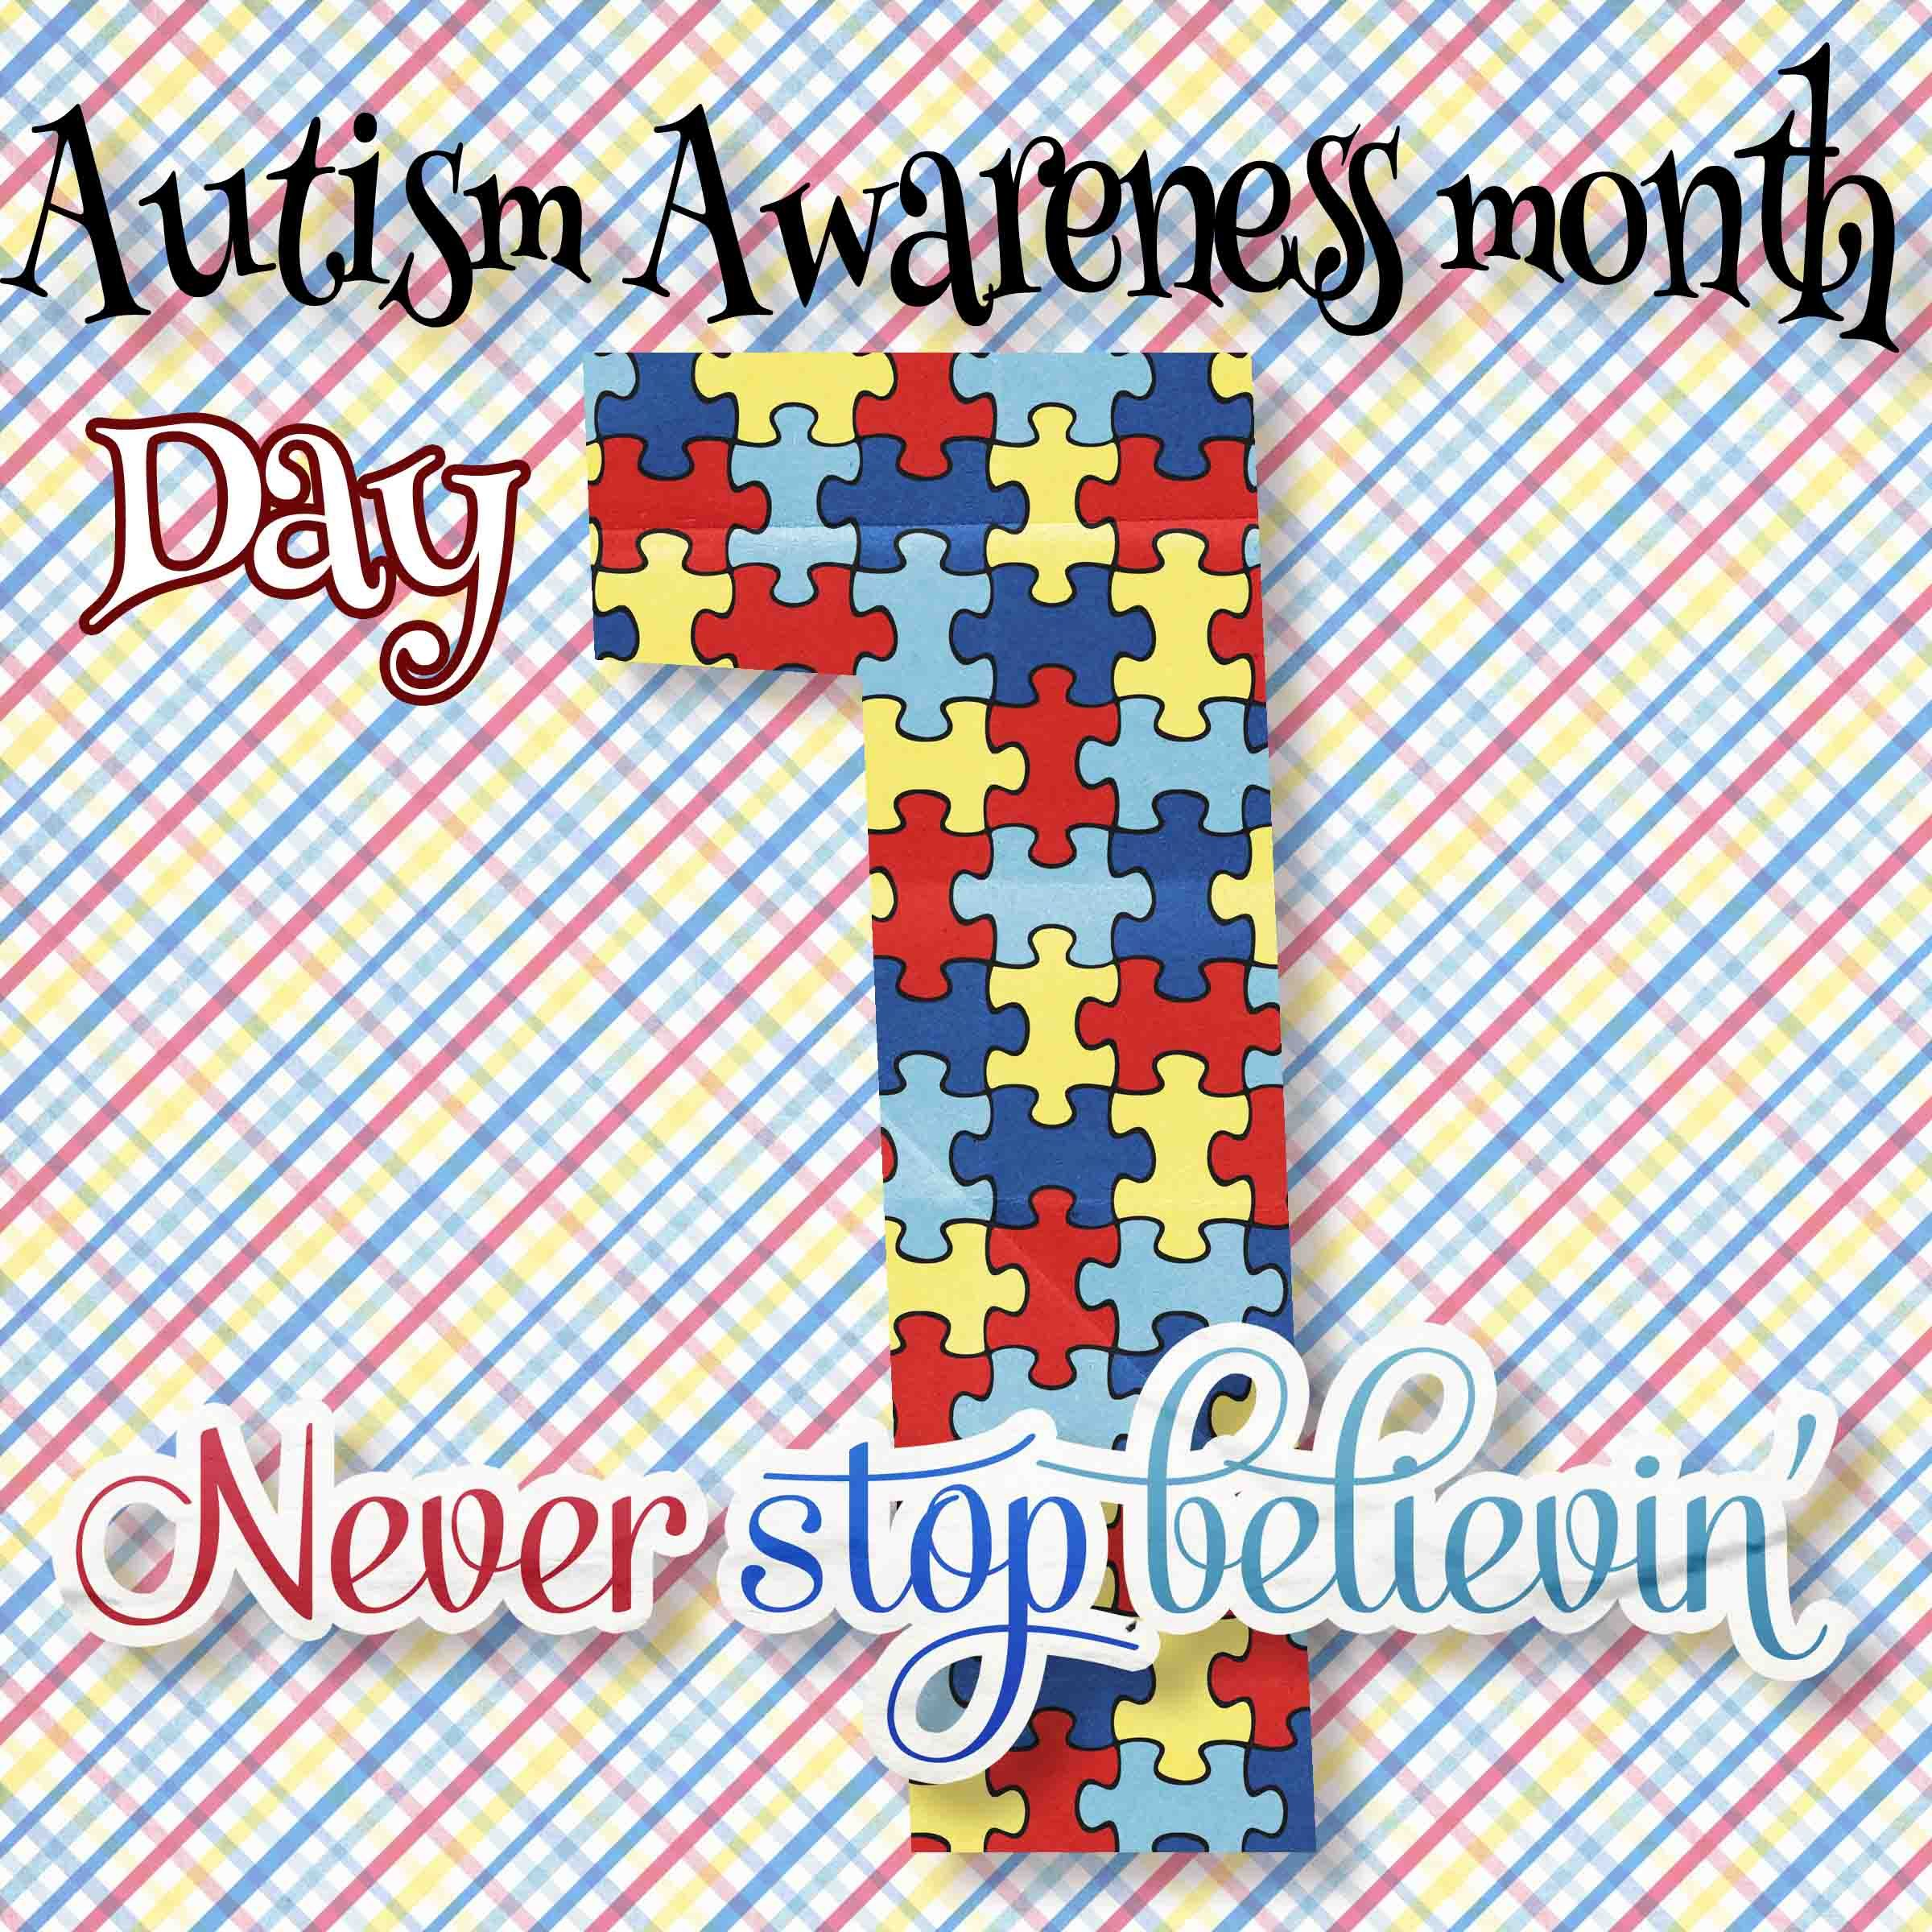 Pin By Mdd Designs On Team Autism